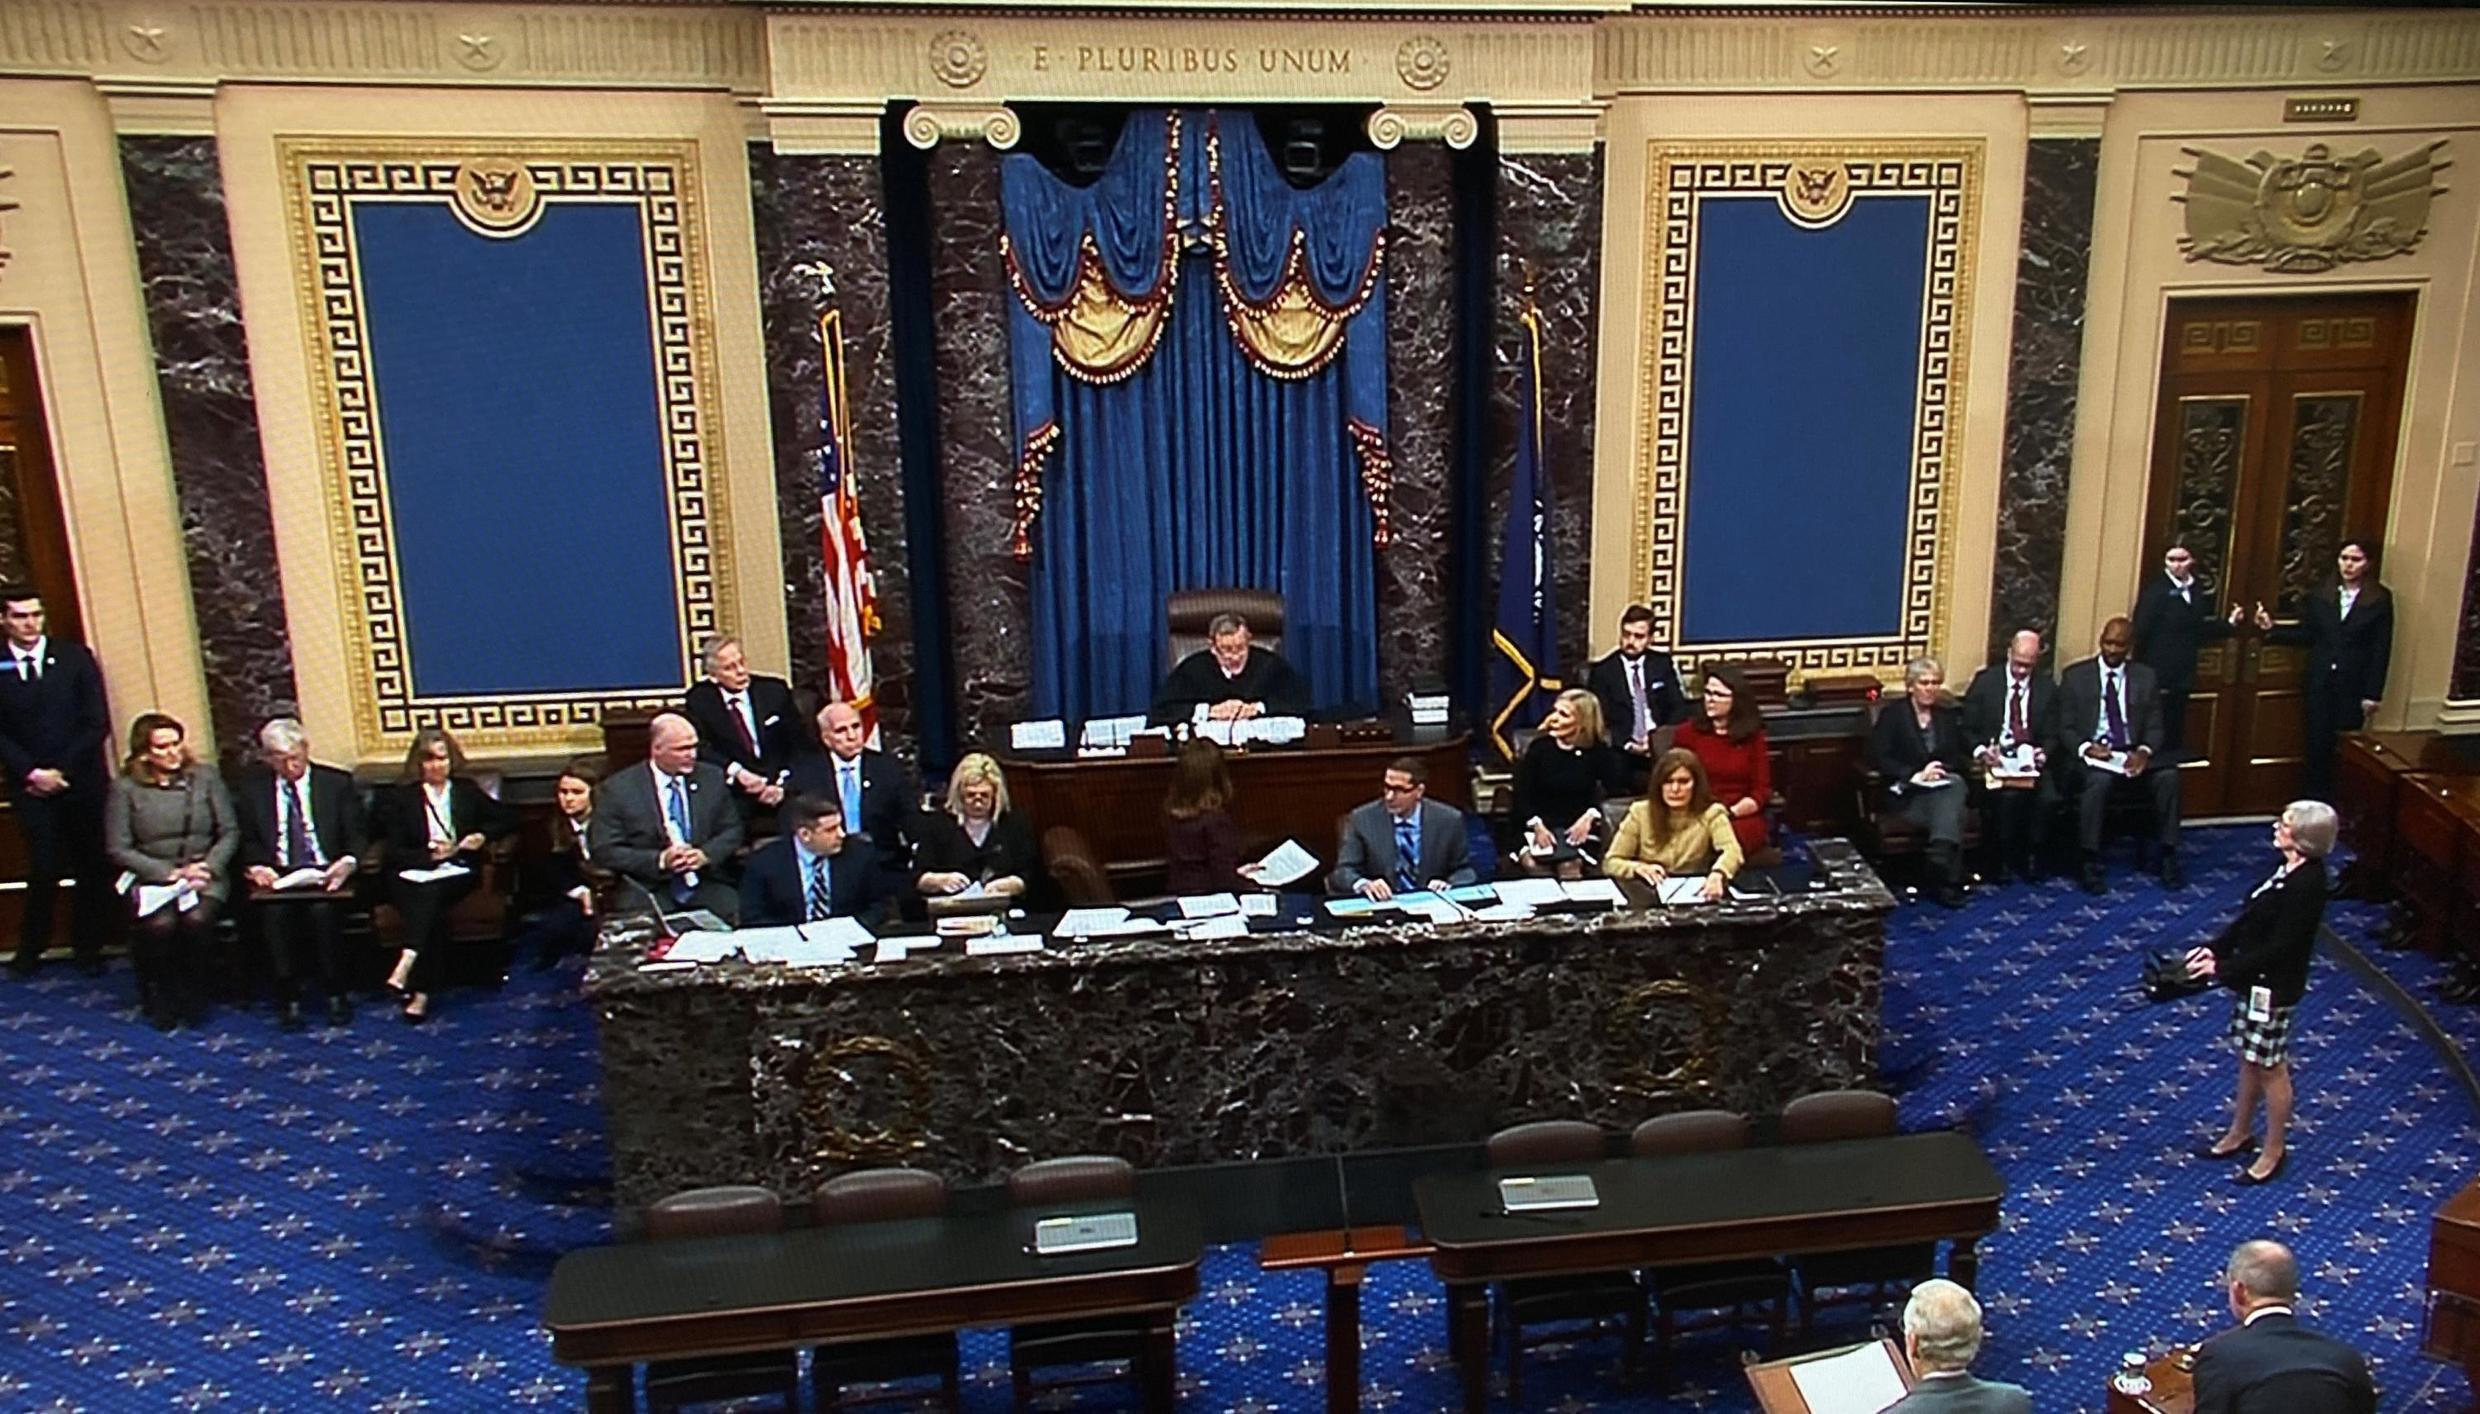 Chief Justice Roberts presides over impeachment trial of President Donald Trump at the U.S. Capitol in Washington U.S., January 16, 2020